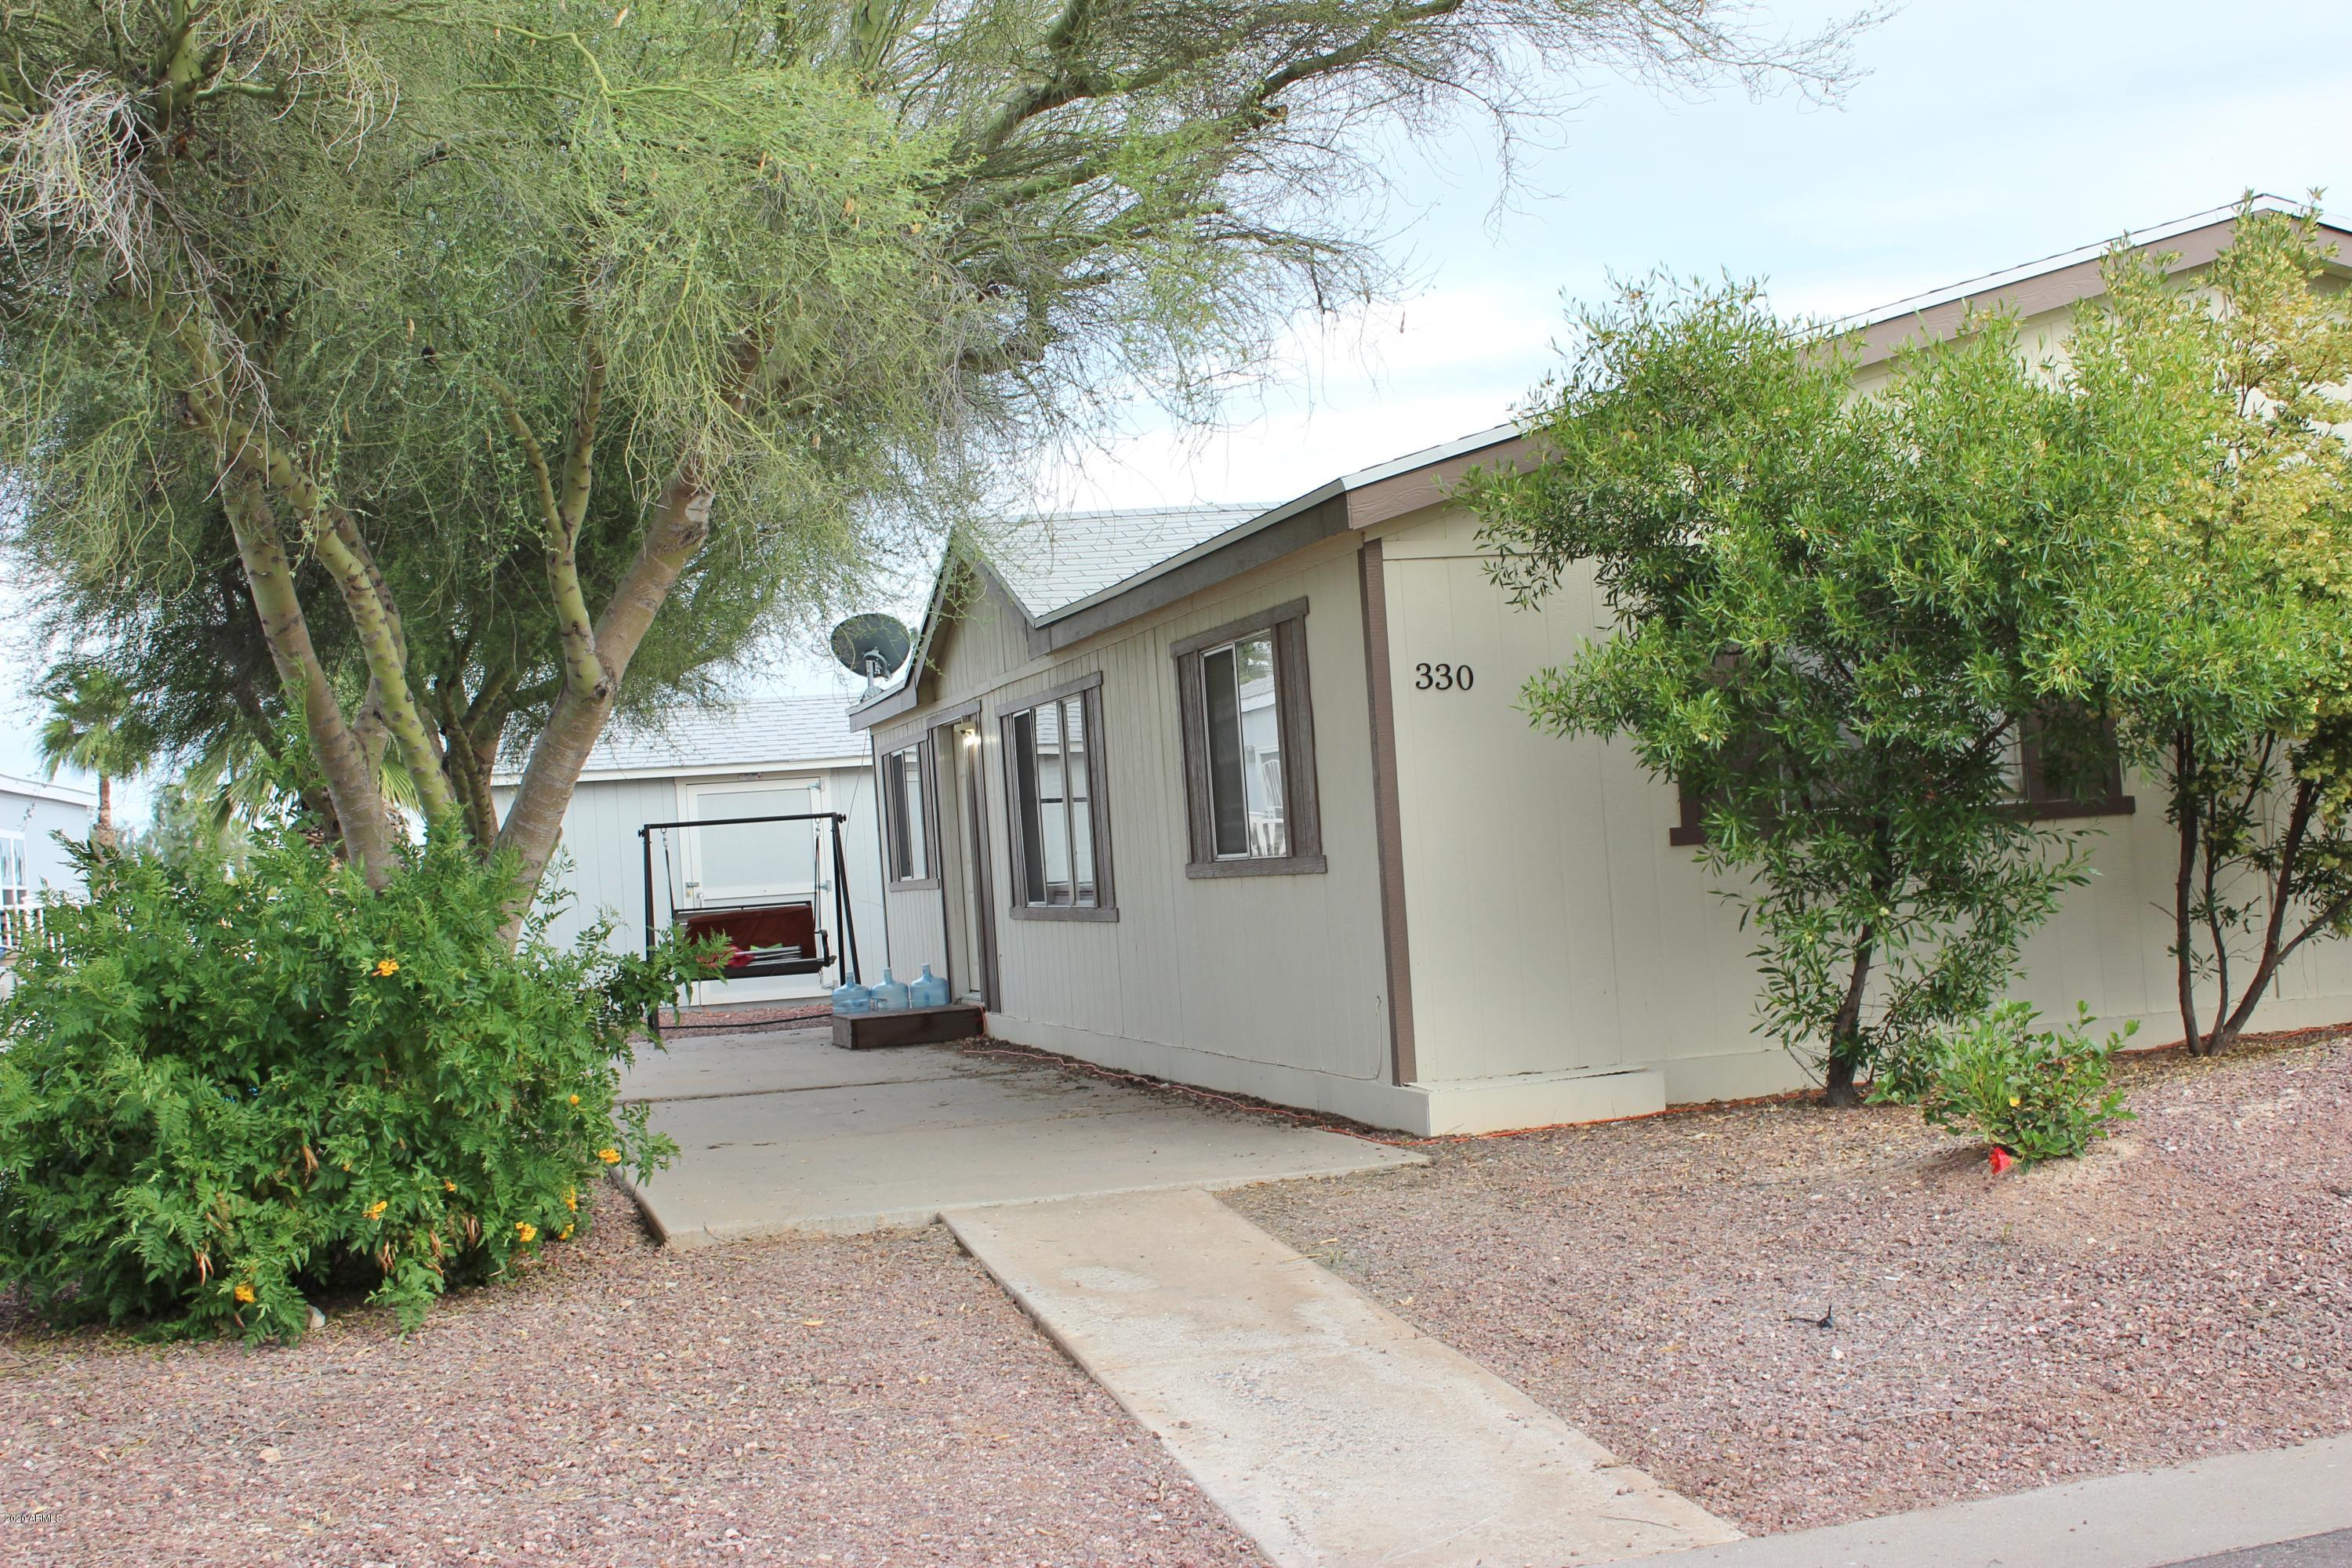 Photo of 2000 S APACHE Road #330, Buckeye, AZ 85326